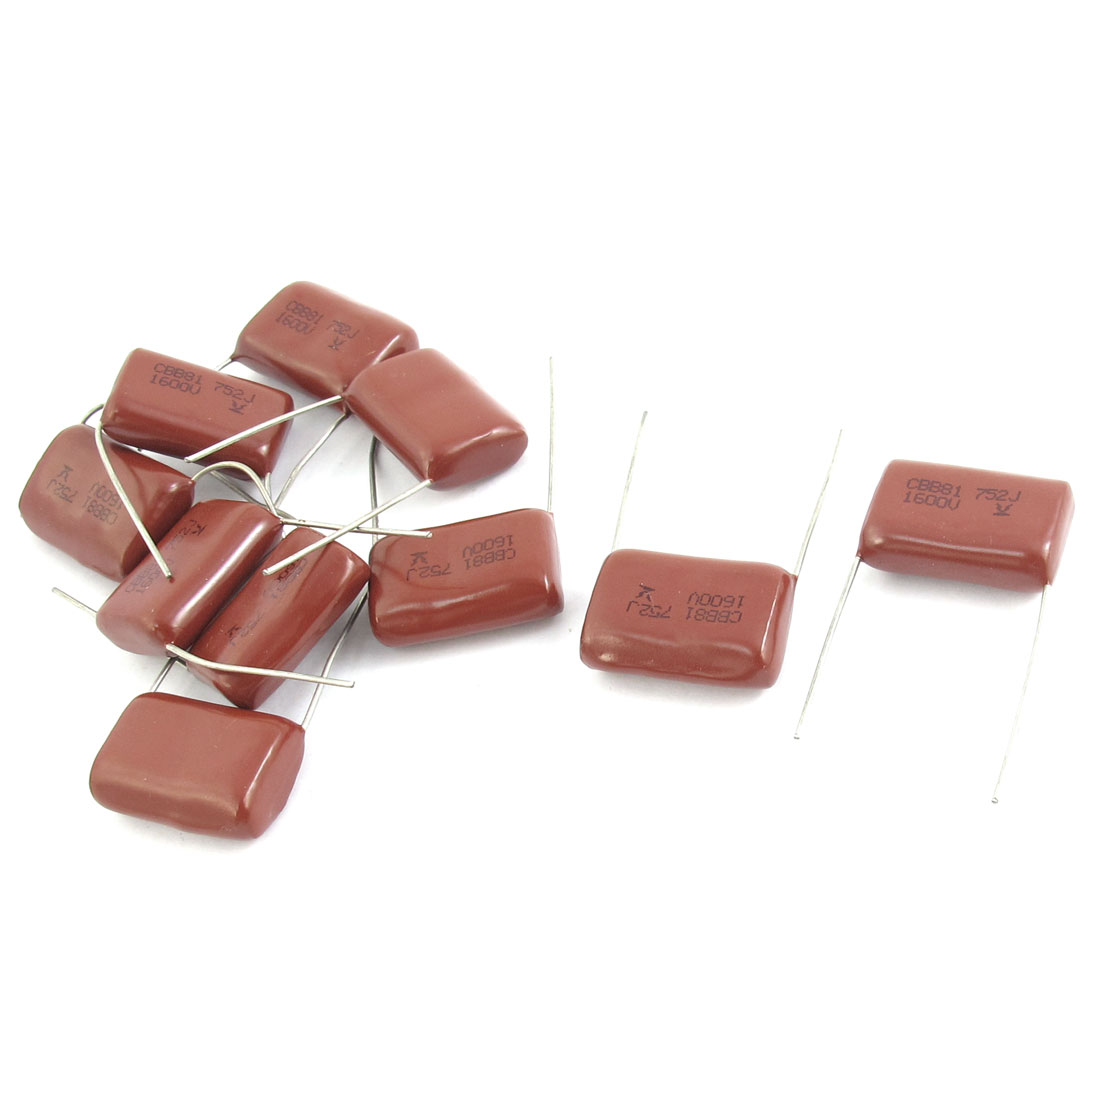 1600V 7500pf Radial Leading Type Through Hole Mount Metallized Polypropylene Film Capacitors 10Pcs